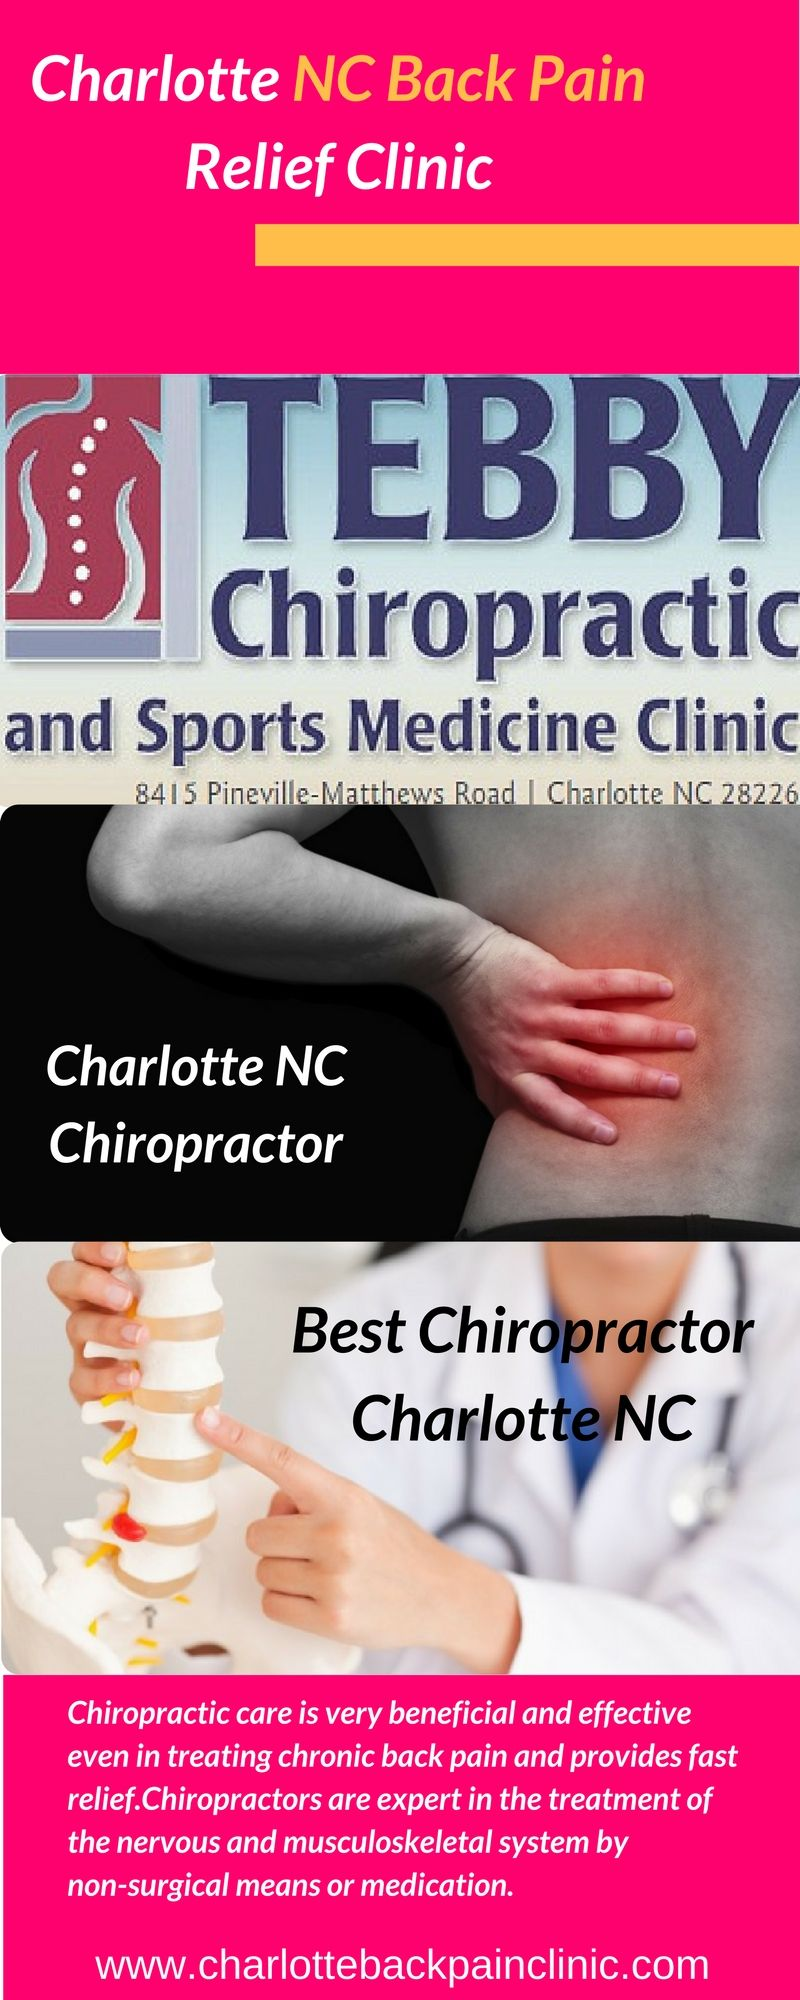 tebby chiropractic and sports medicine clinic is the most reliable